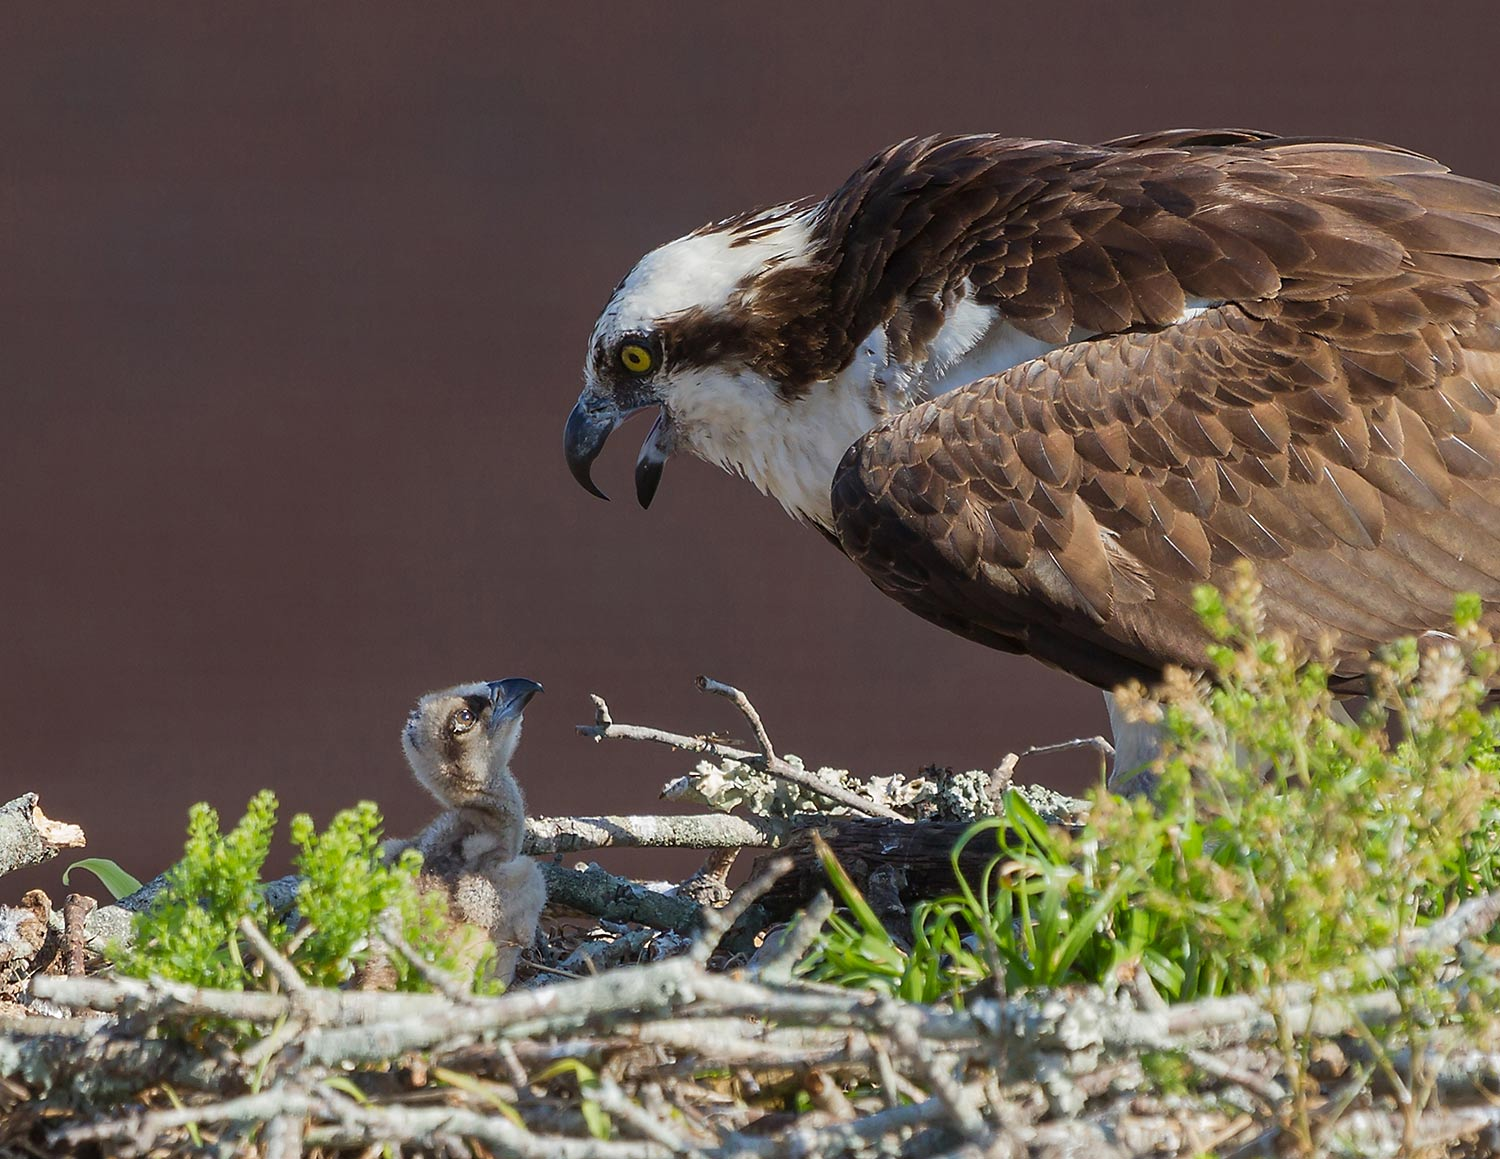 You won't believe how and where I got this picture. I took this in downtown Winter Park, FL. The osprey nest was on a post between a parking garage and a building. I was on the top of the parking garage.